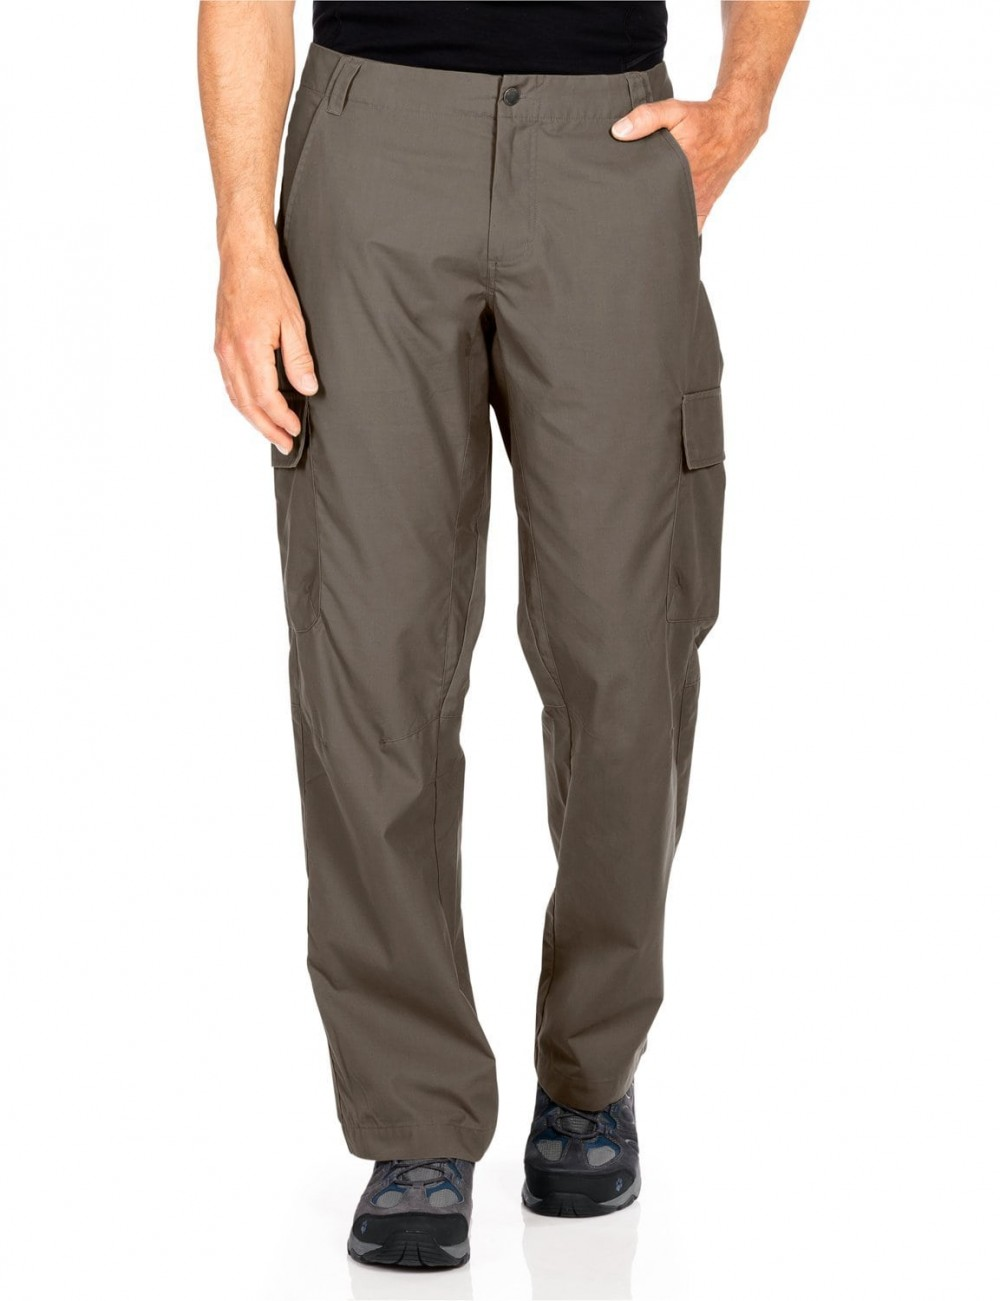 Штаны JACK WOLFSKIN North evo pants (размер 50/L) - 18671